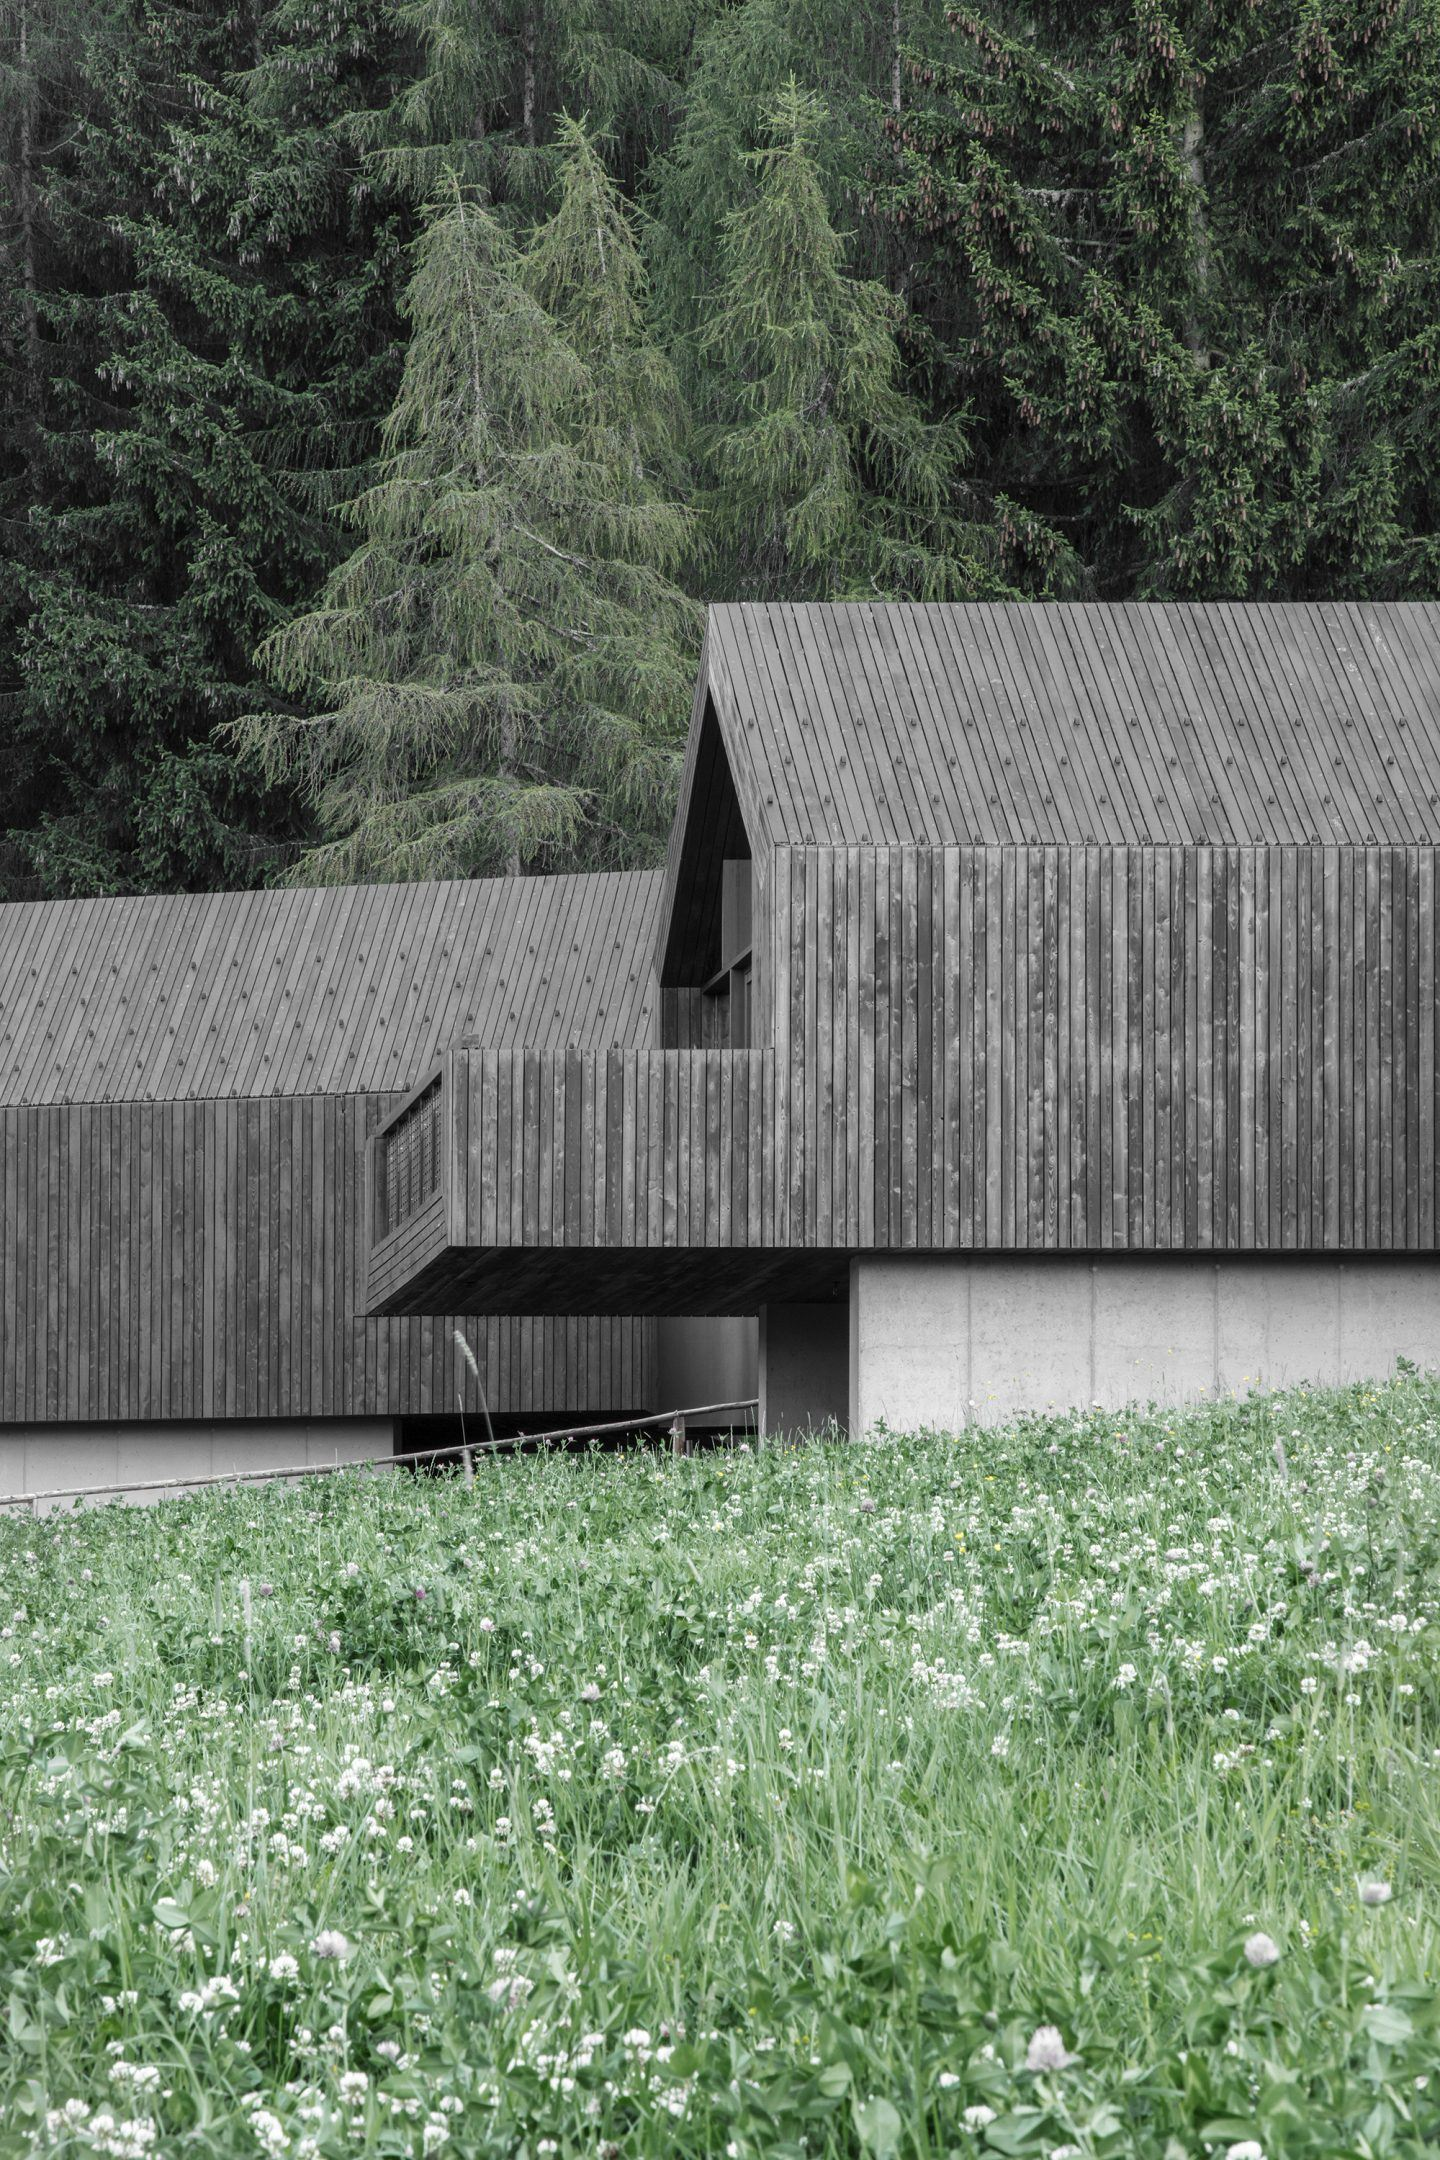 IGNANT-Architecture-Bergmeisterwolf-Fan-Forest-Houses-2